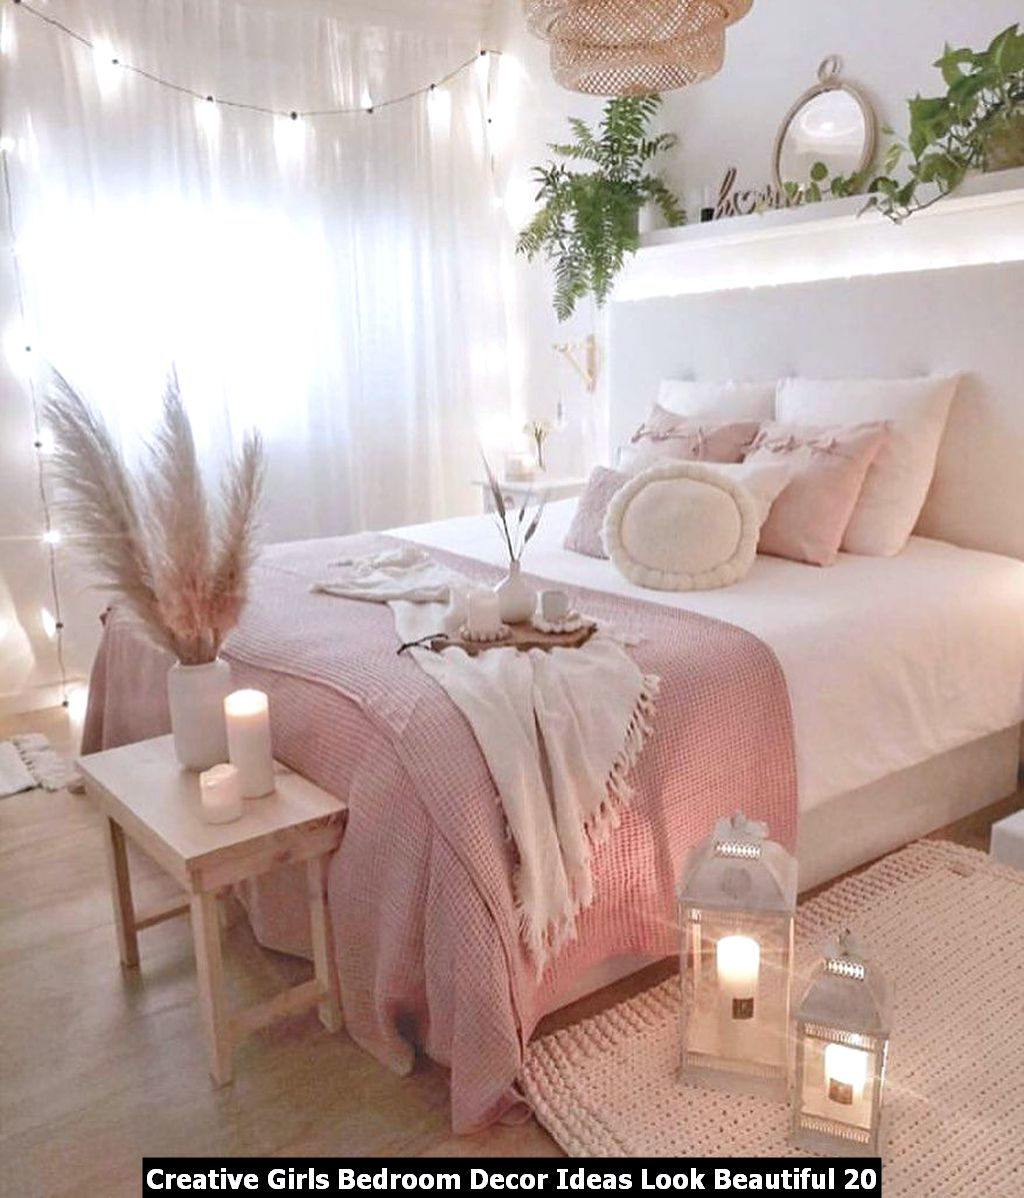 Creative Girls Bedroom Decor Ideas Look Beautiful 20